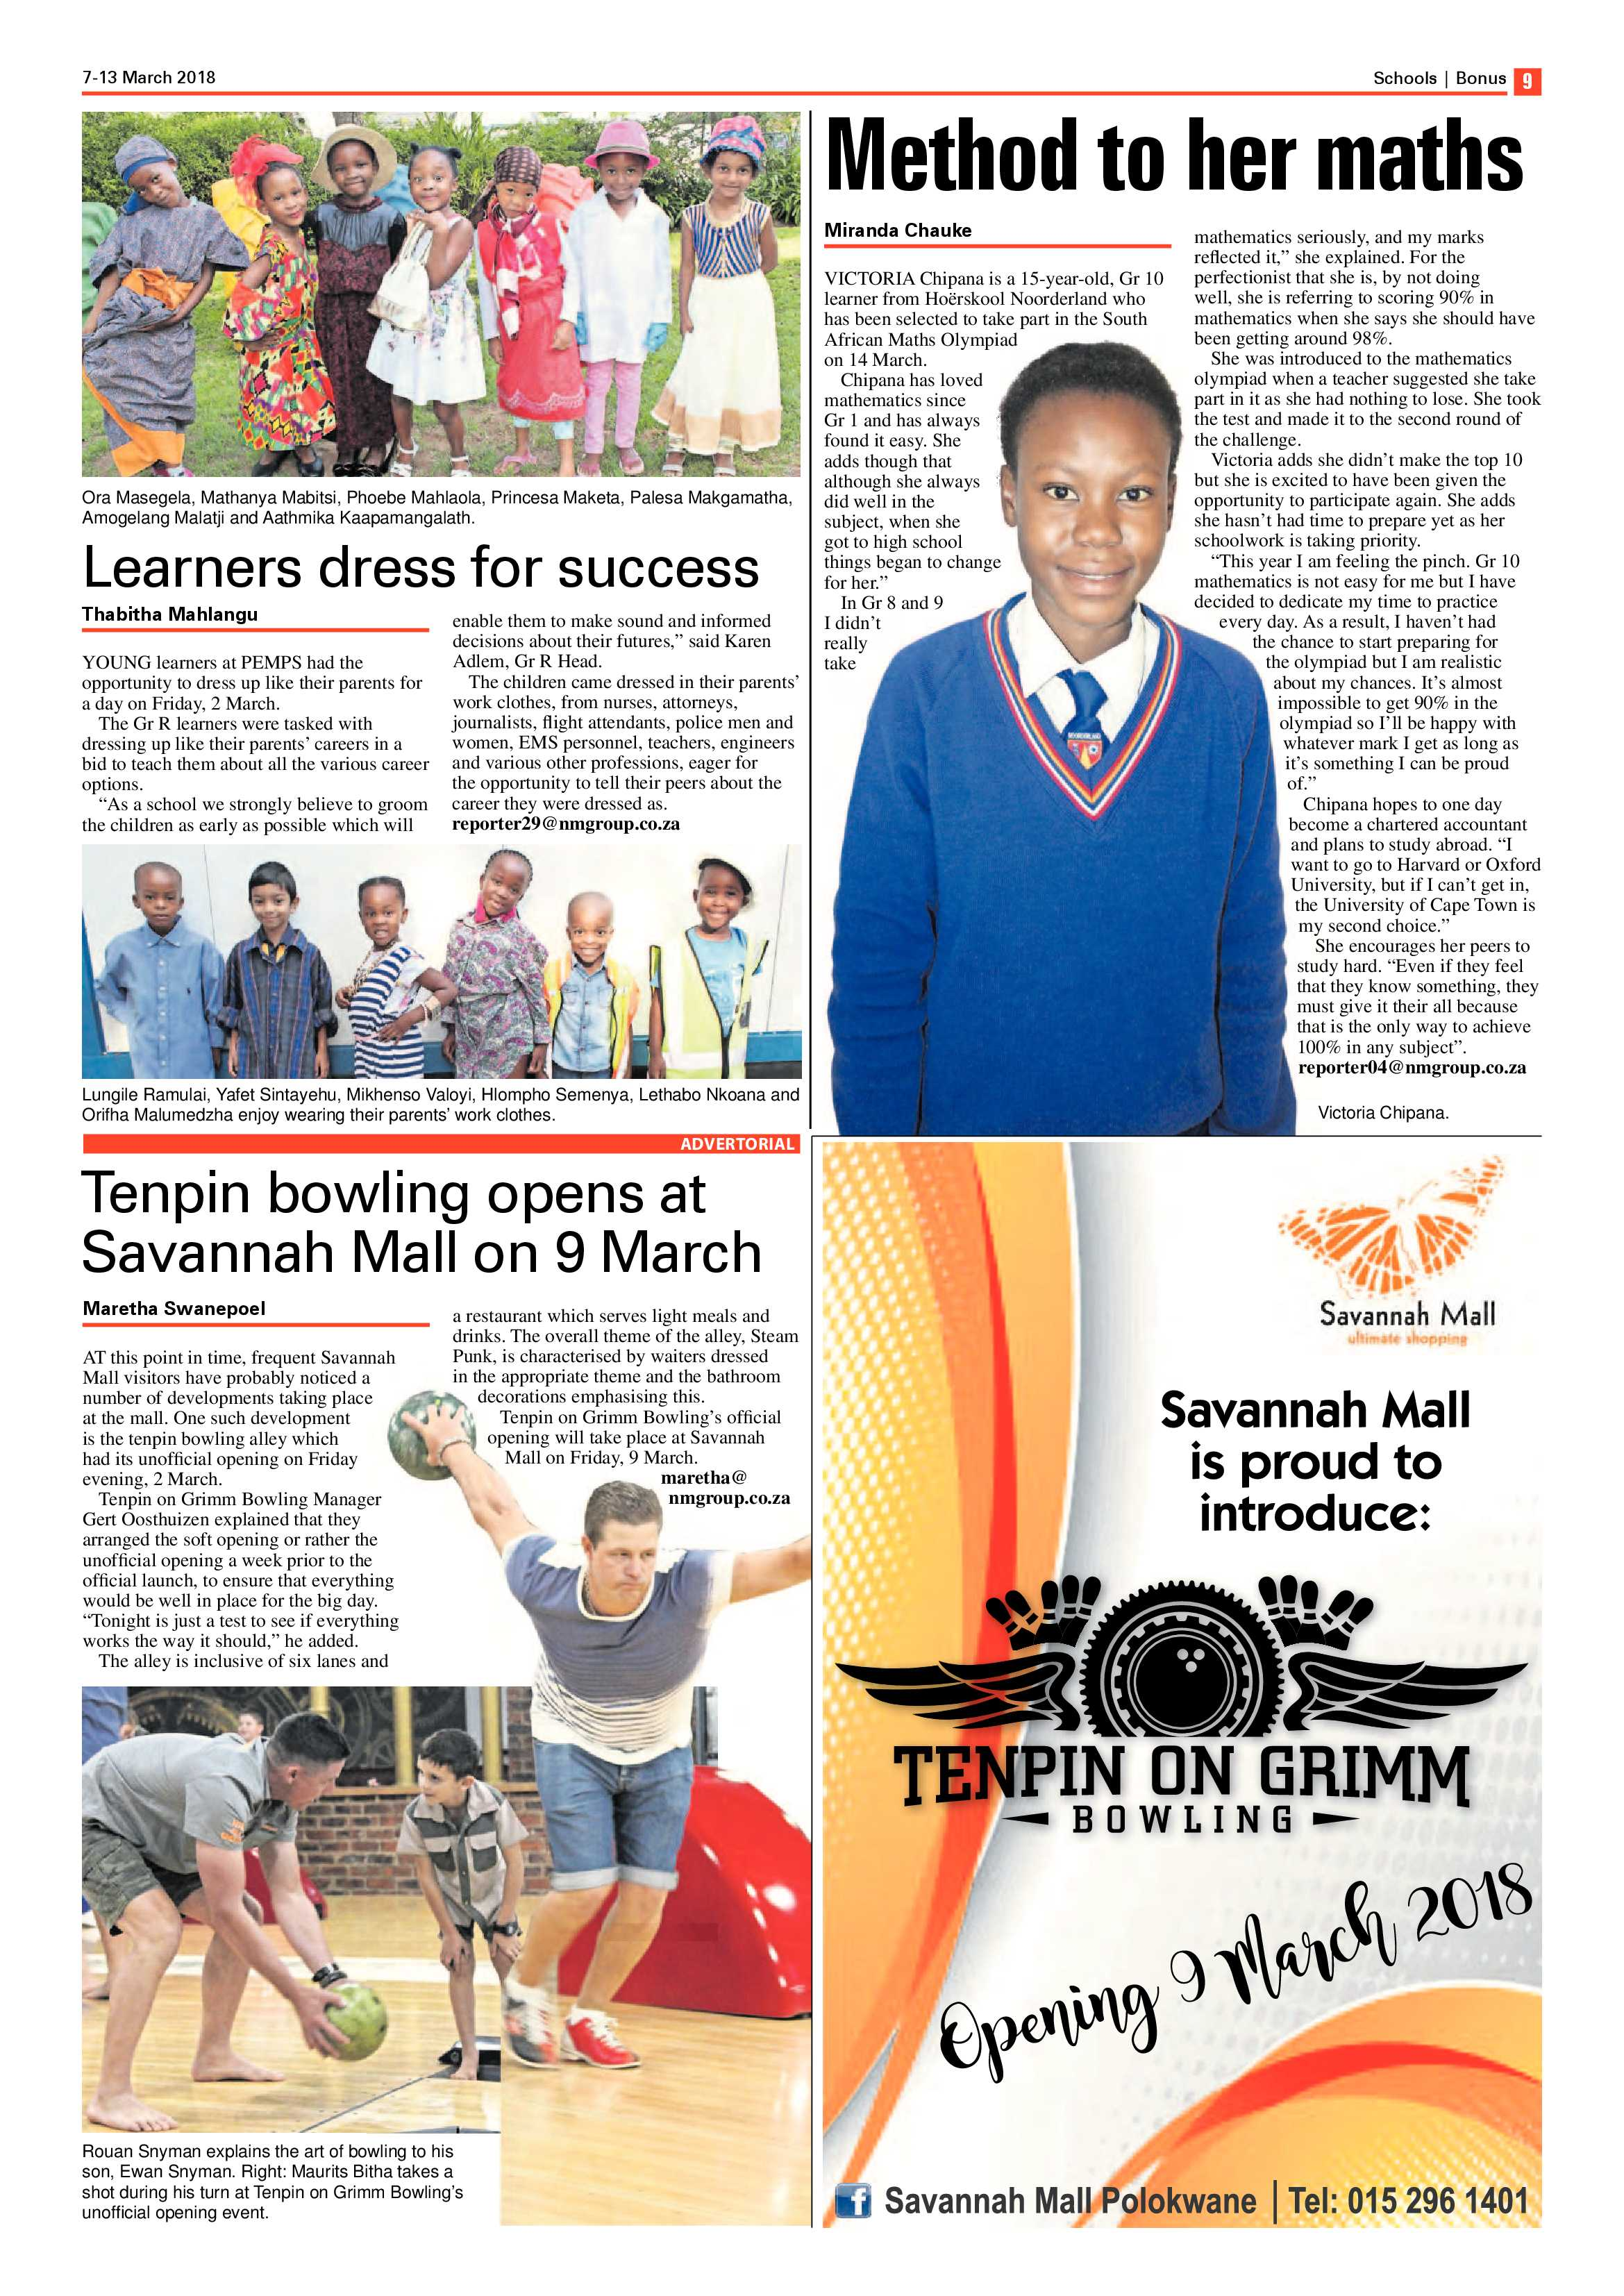 review-bonus-7-march-2018-epapers-page-9